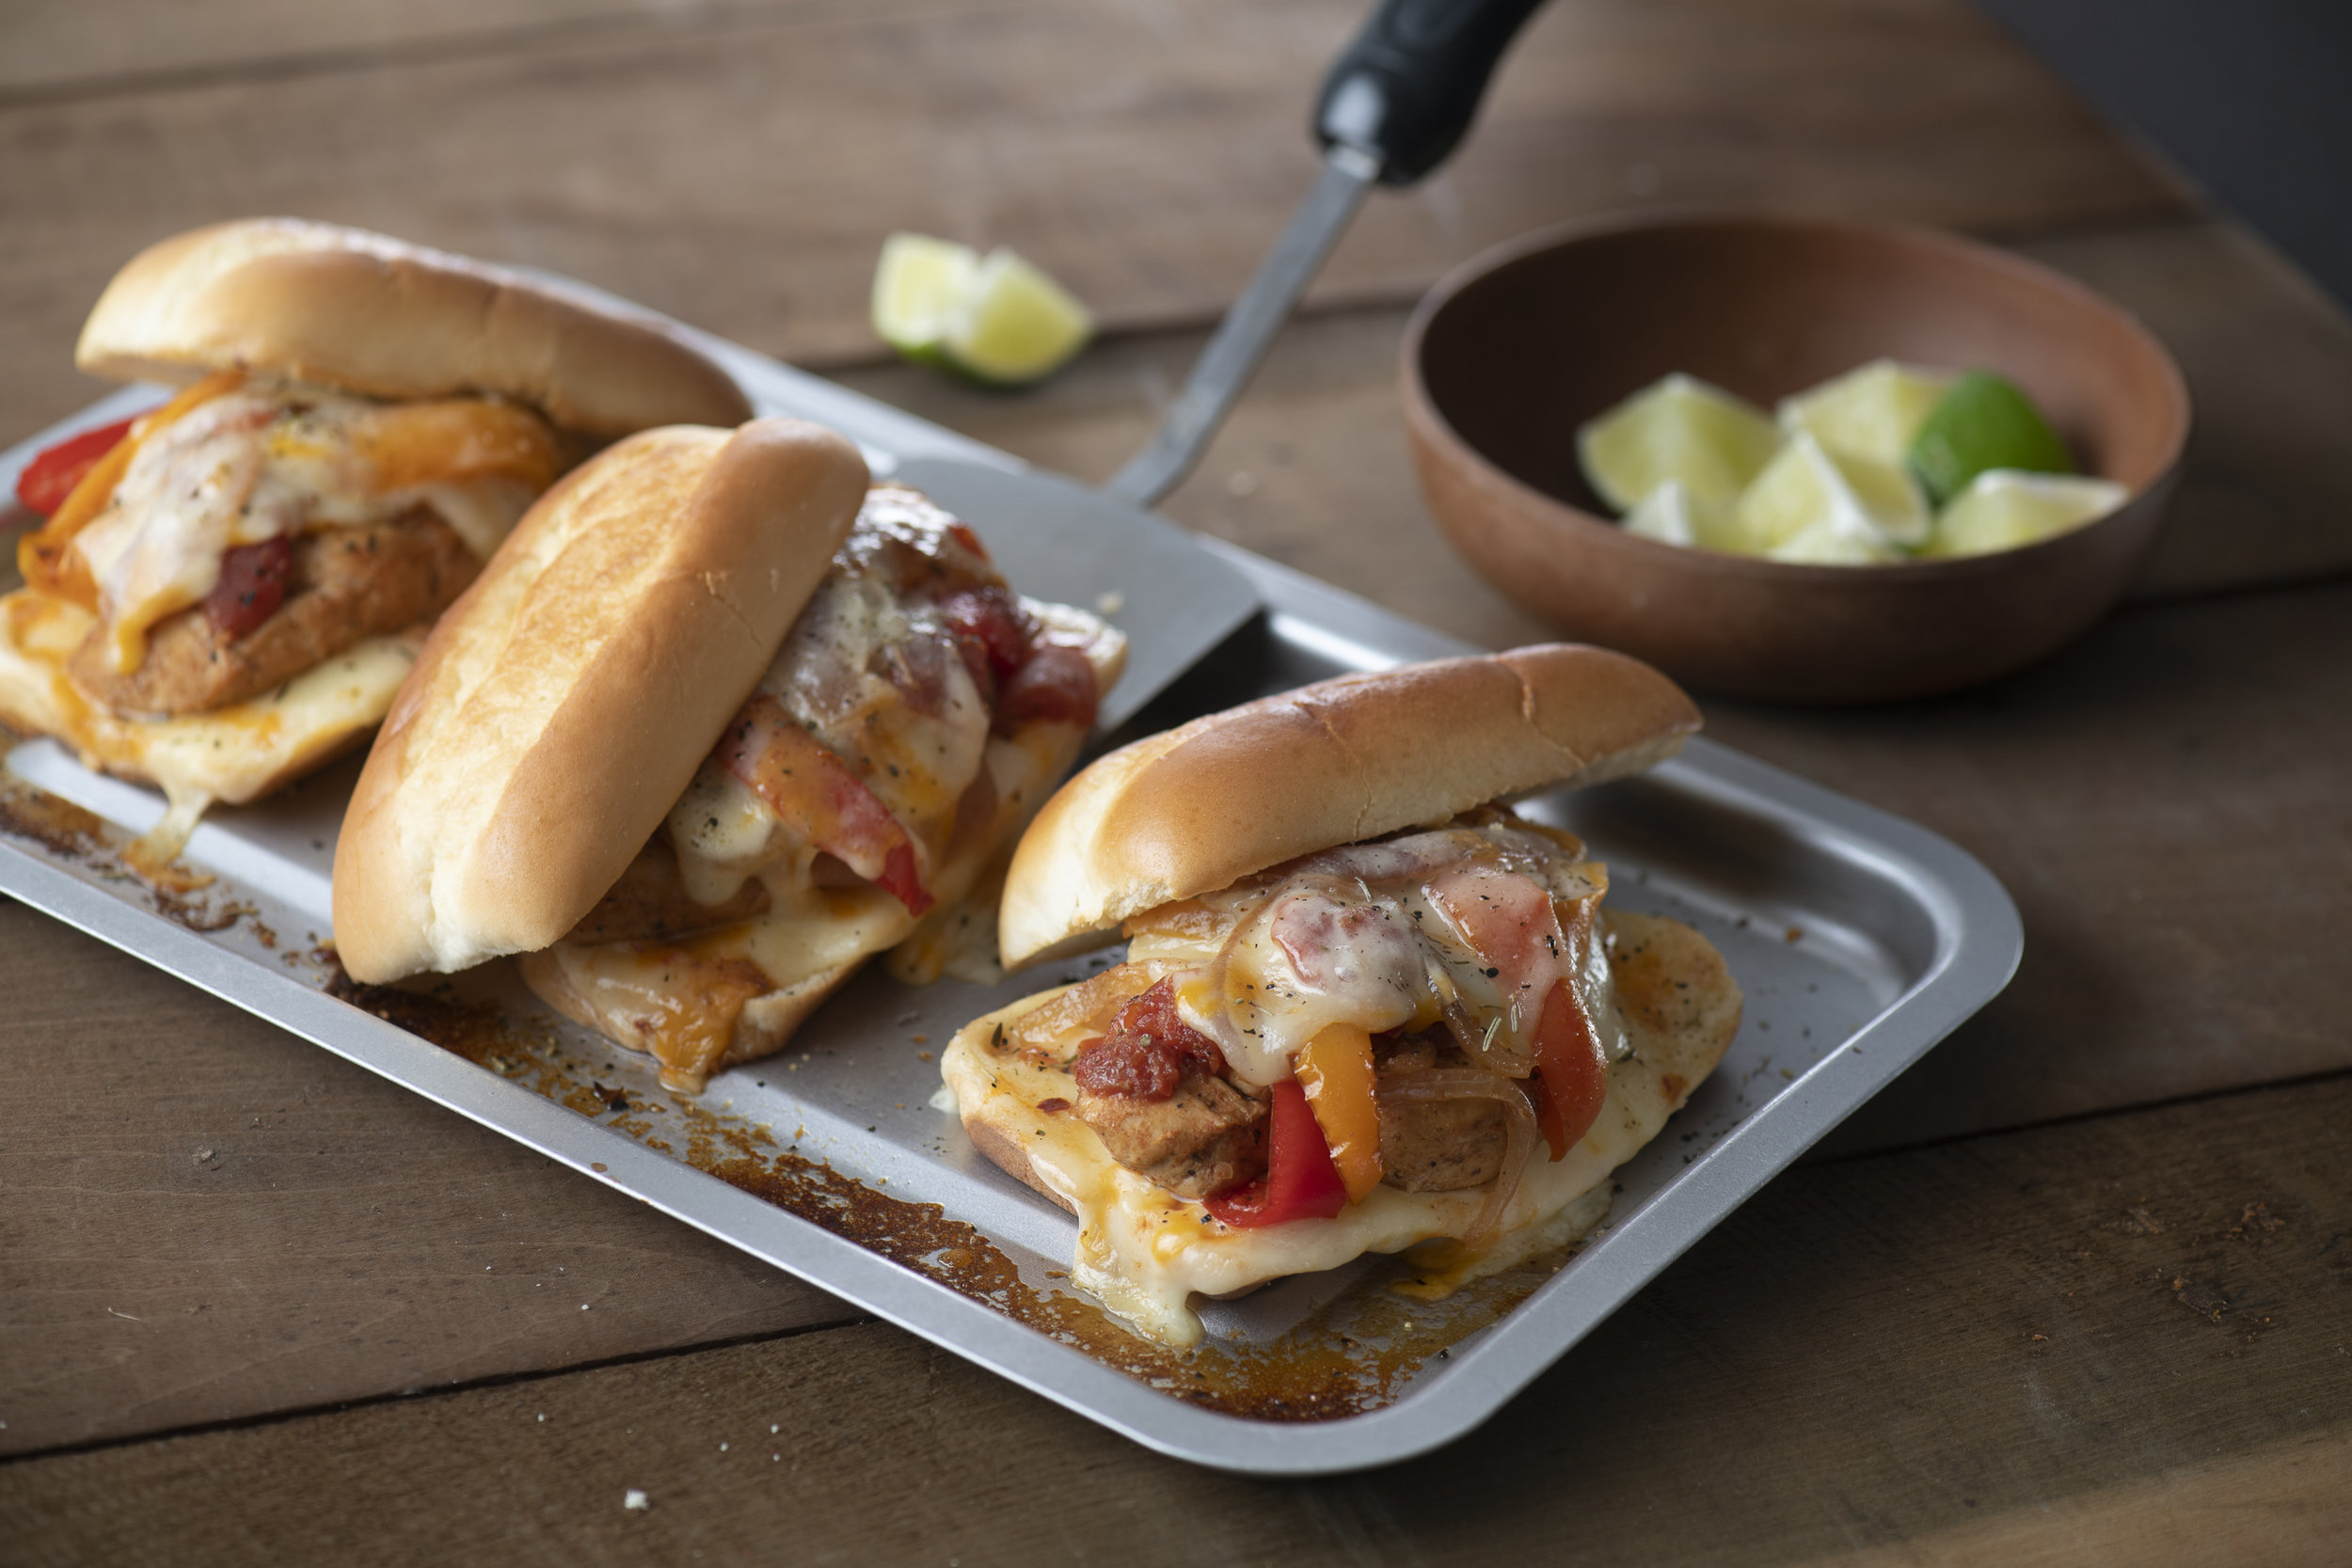 1. Chicken Fajita Sandwiches - Being the MVP of your tailgate spread is easy with these mouth-watering Chicken Fajita Sandwiches. Just layer chopped veggies and chicken in a slow cooker, cook on low while you prep the rest of your spread, and add the mix to one of our Deli Sub buns.